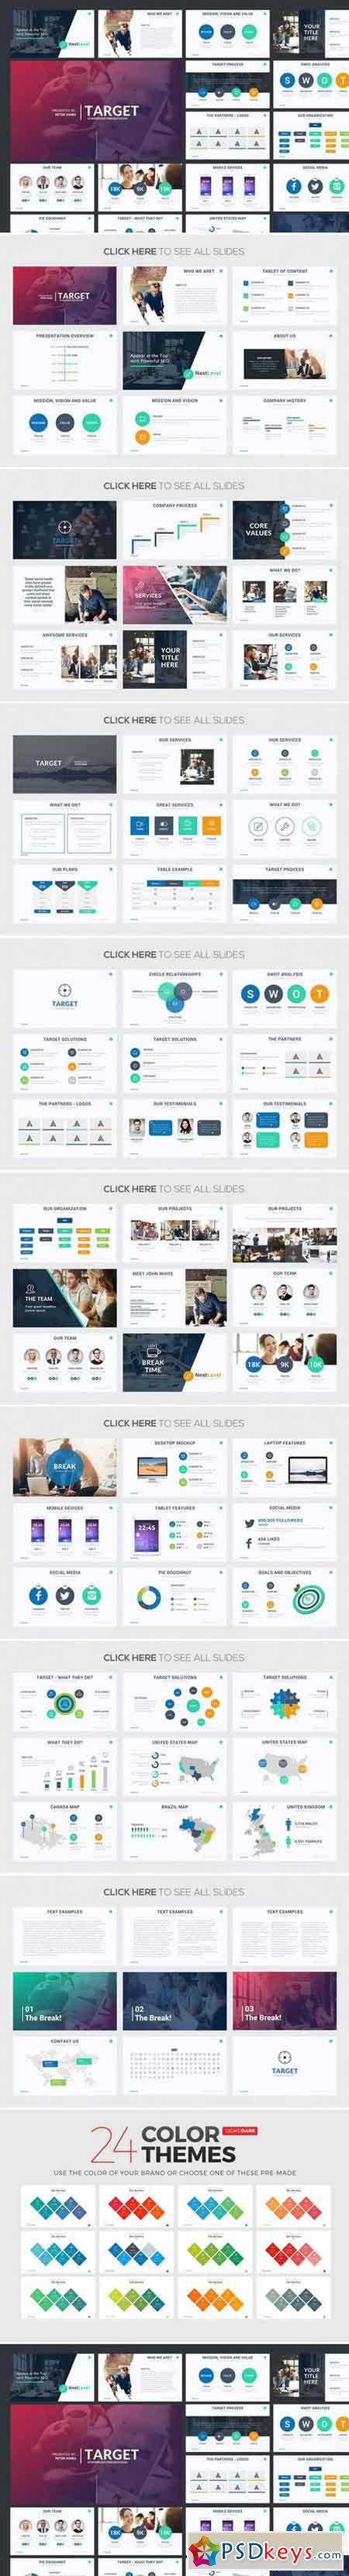 Target Powerpoint Template 787254